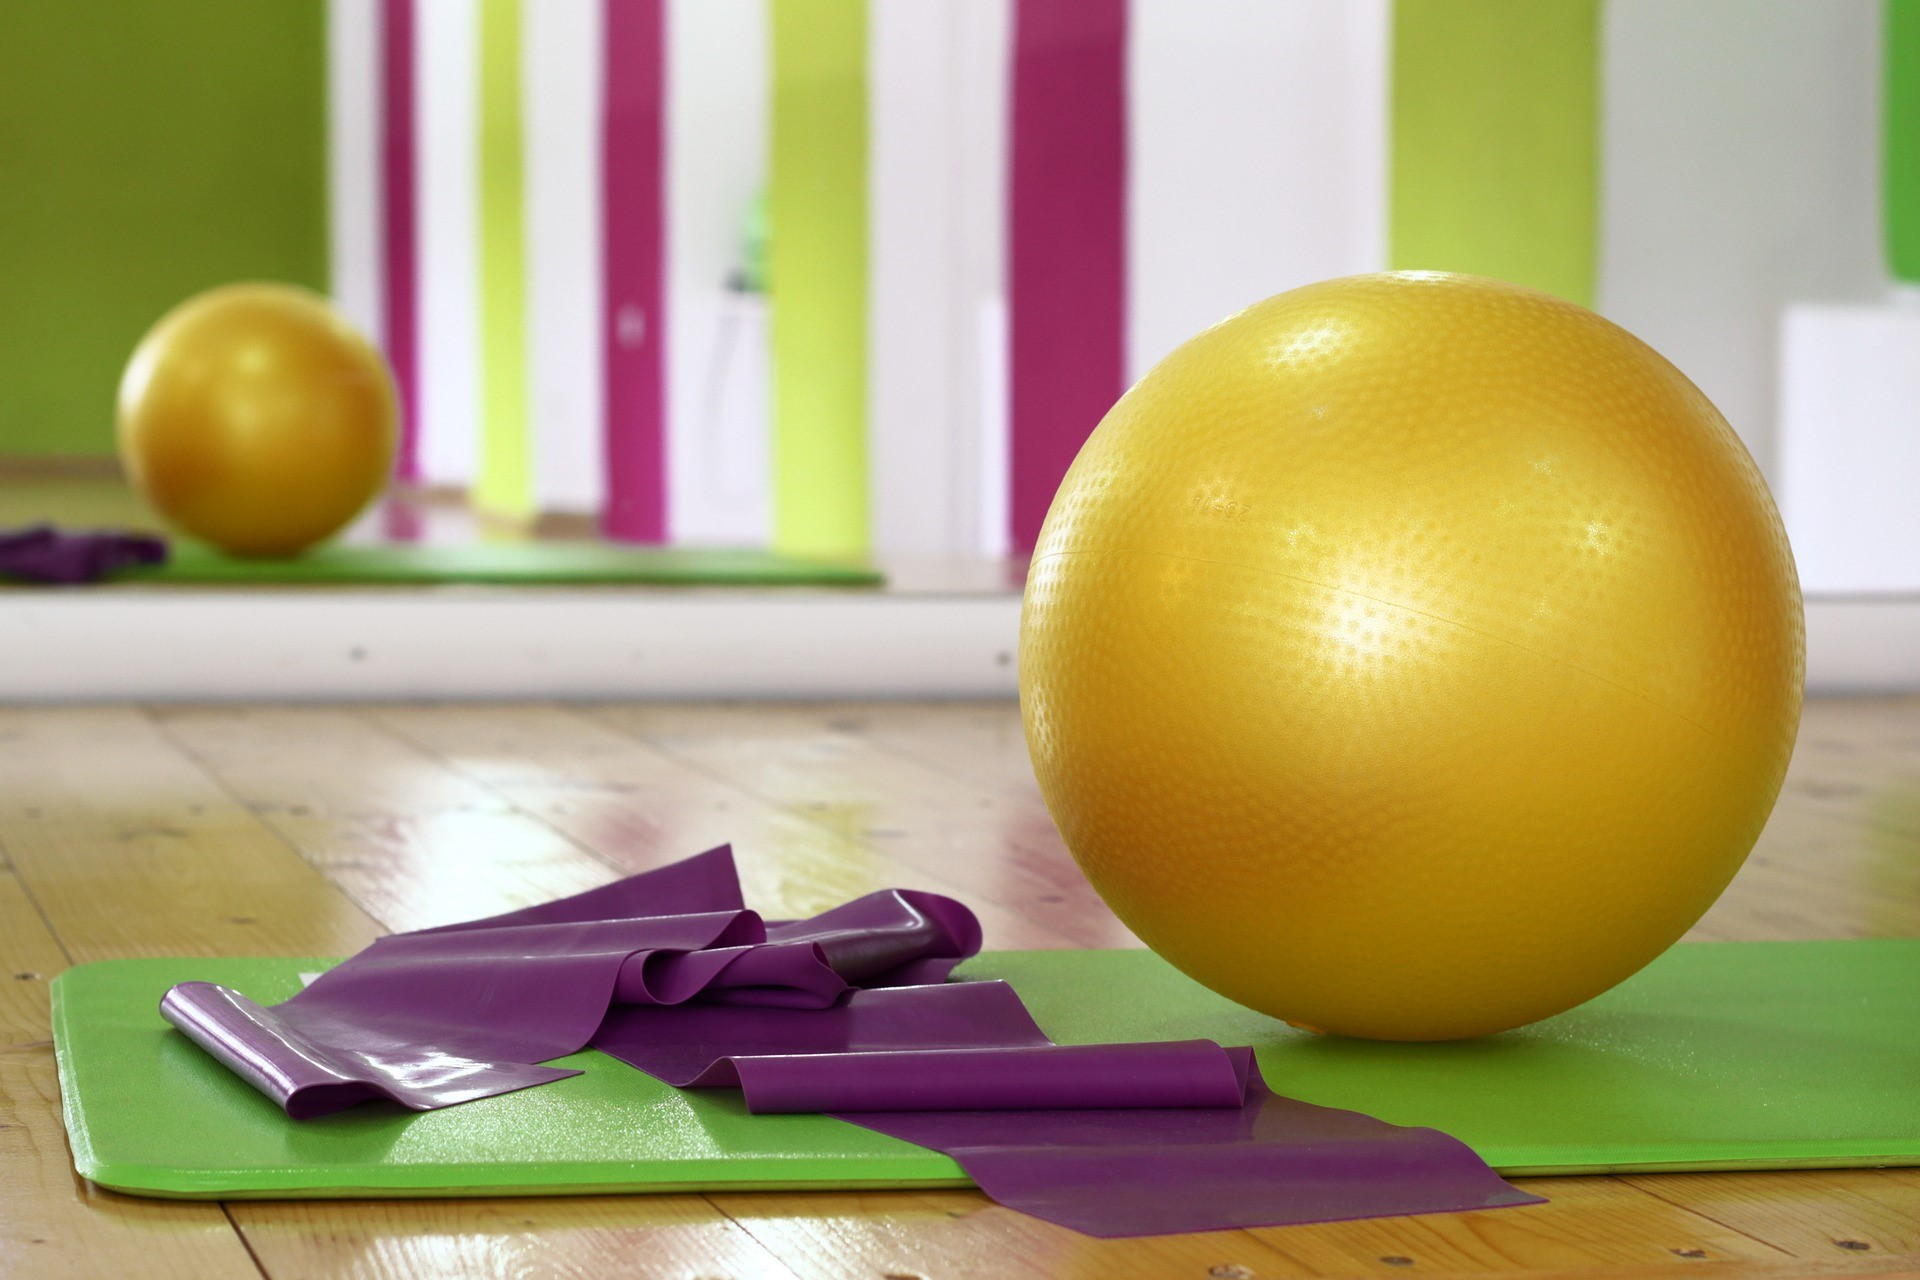 yellow-and-purple-exercise-equipment.jpg